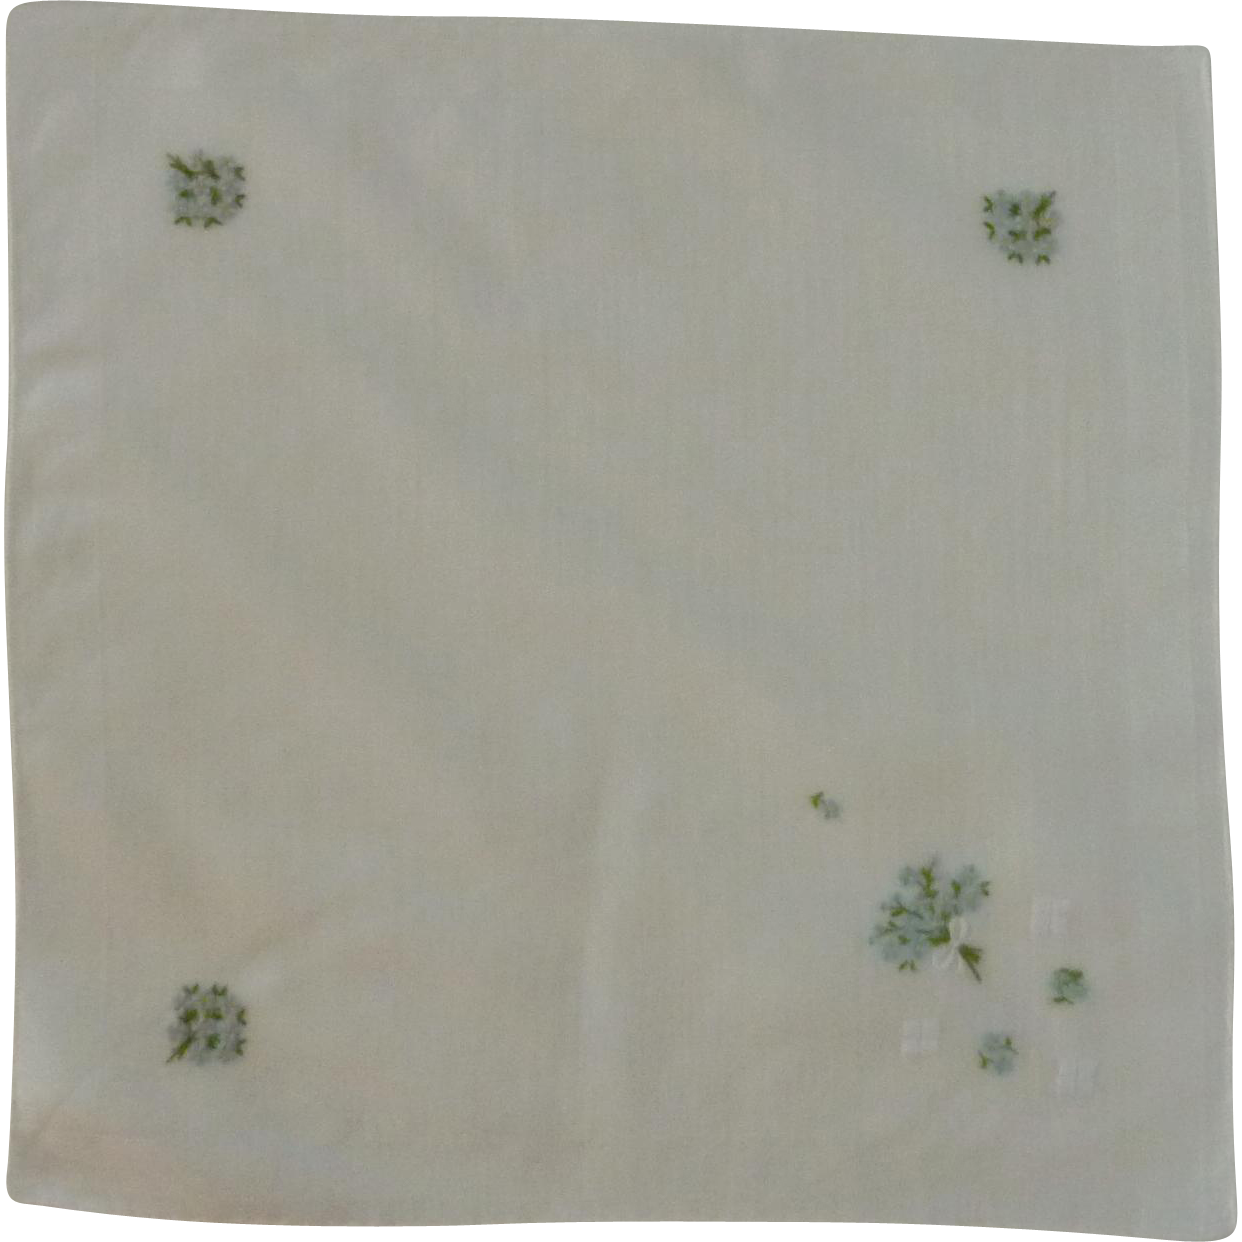 White Cotton 1930's with Blue Daisy's Handkerchief Hanky